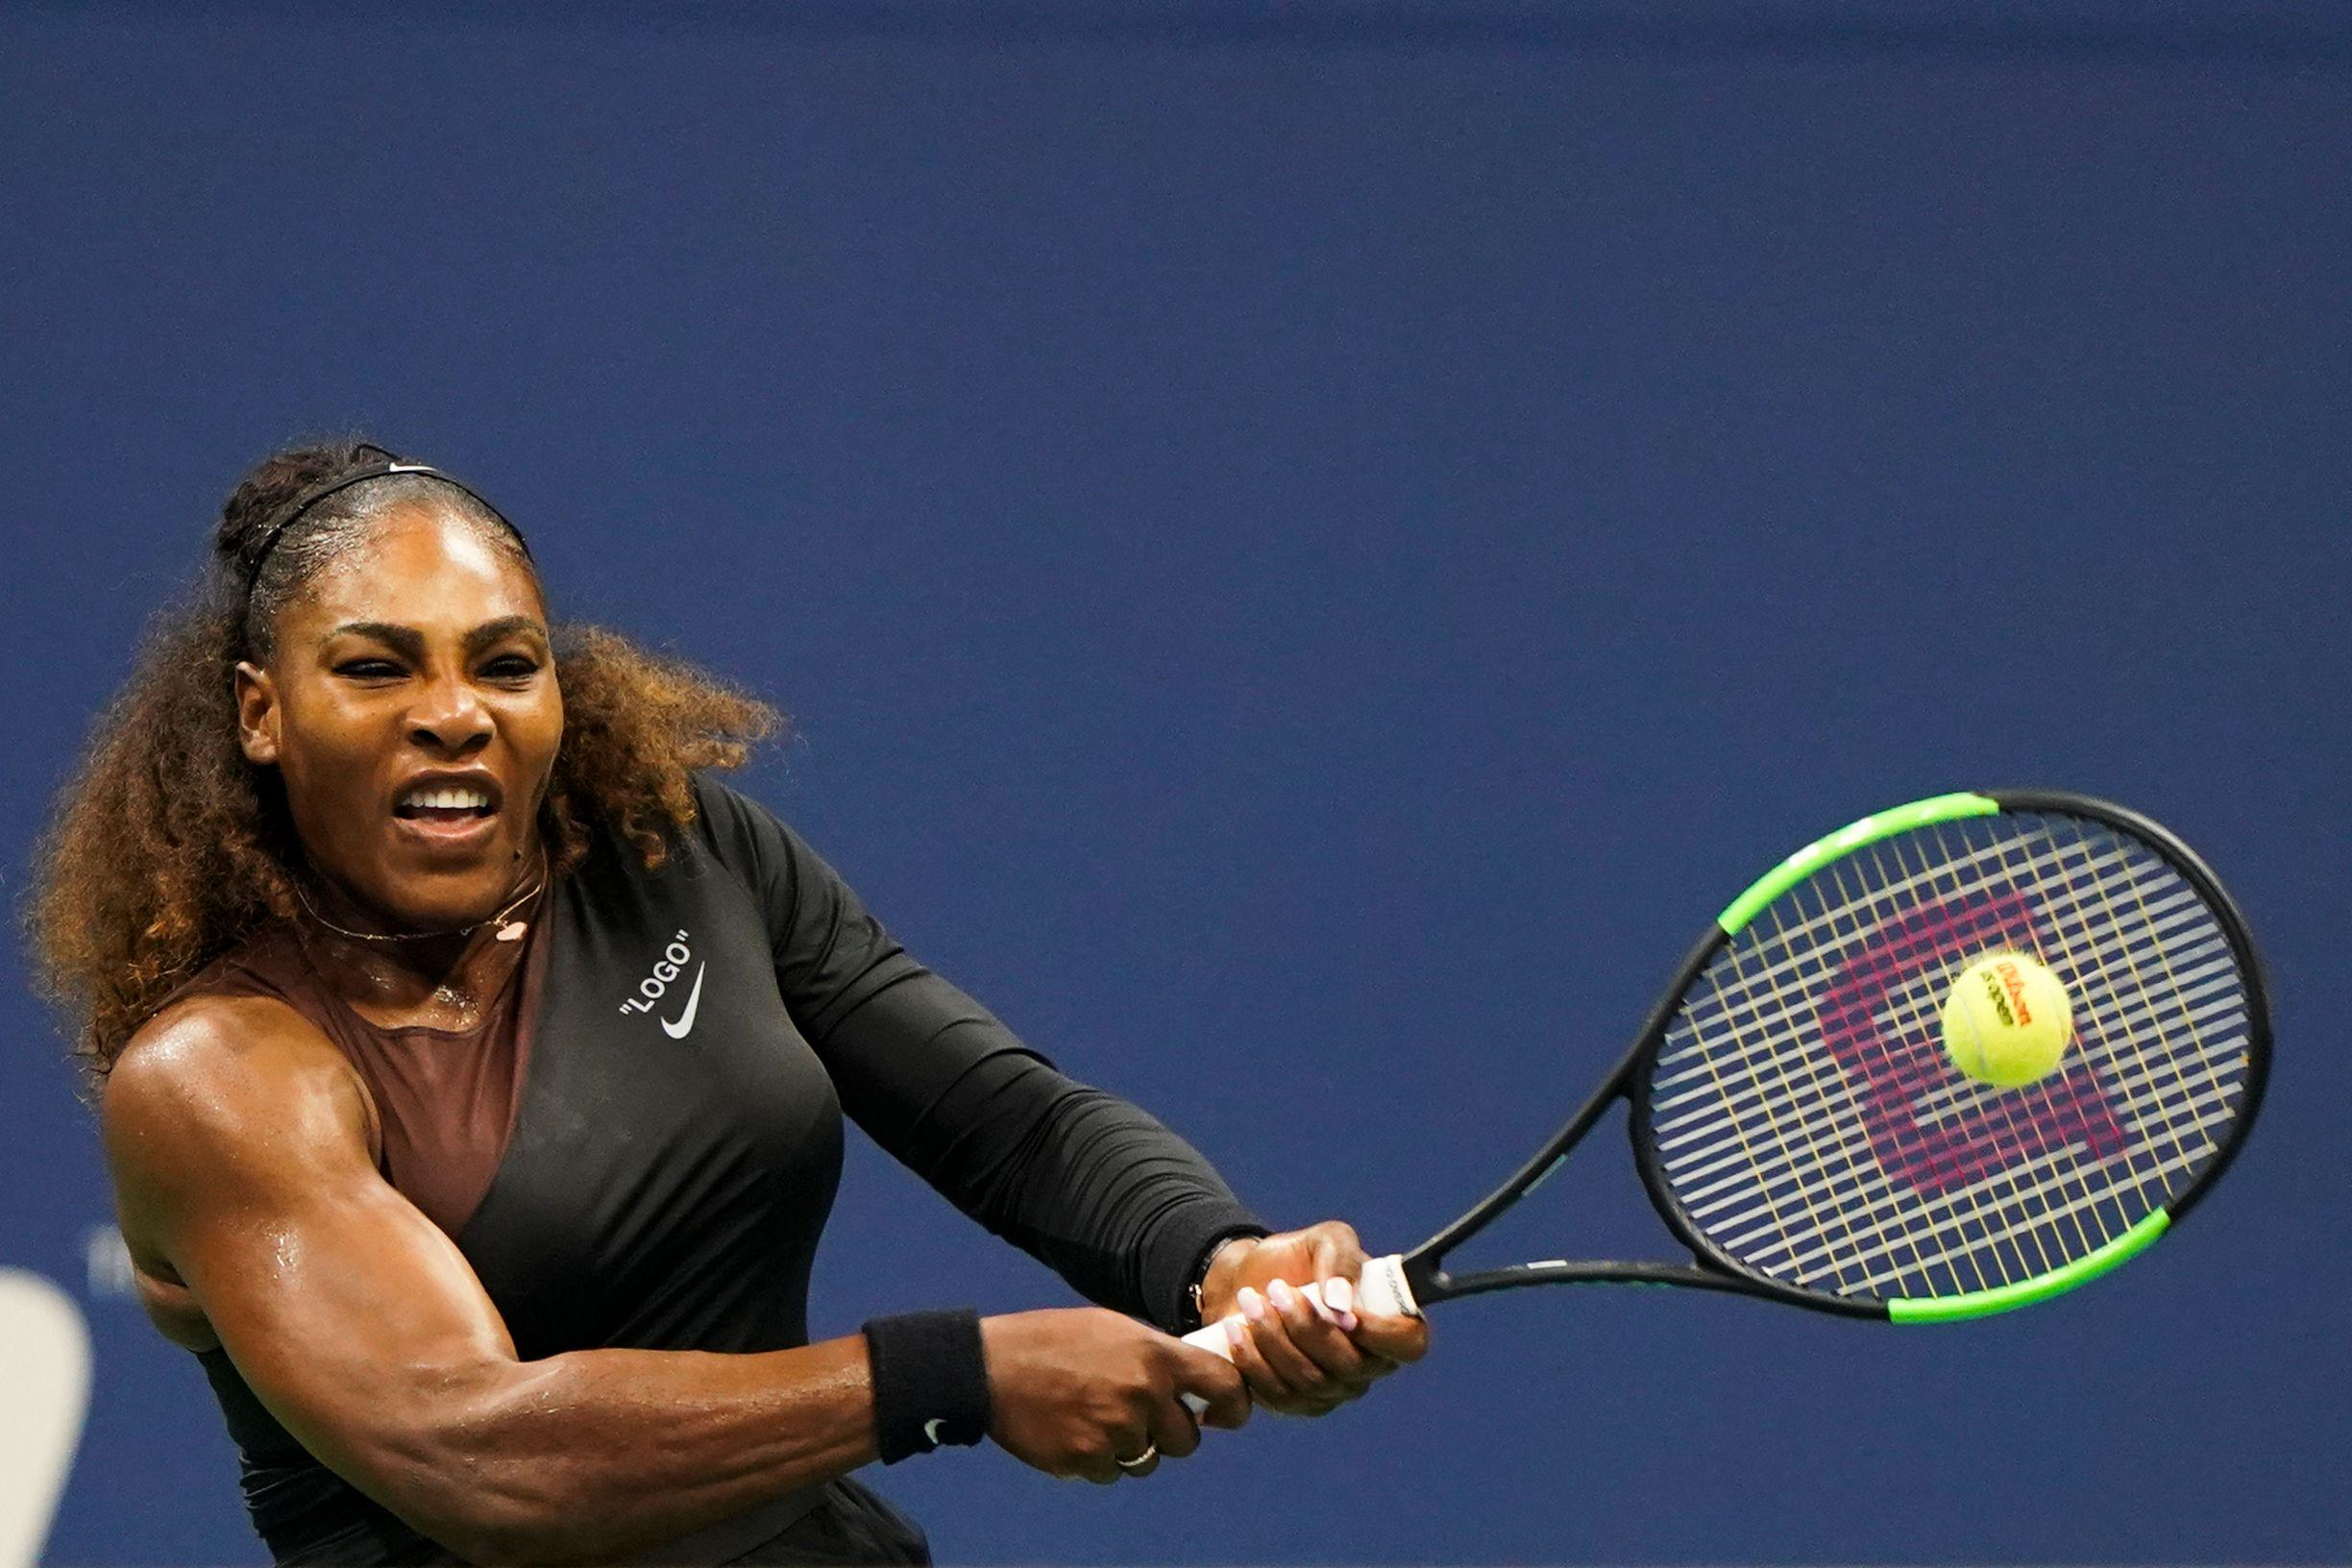 It was the 23-time Grand Slam champ's most complete performance since returning after the birth of her daughter